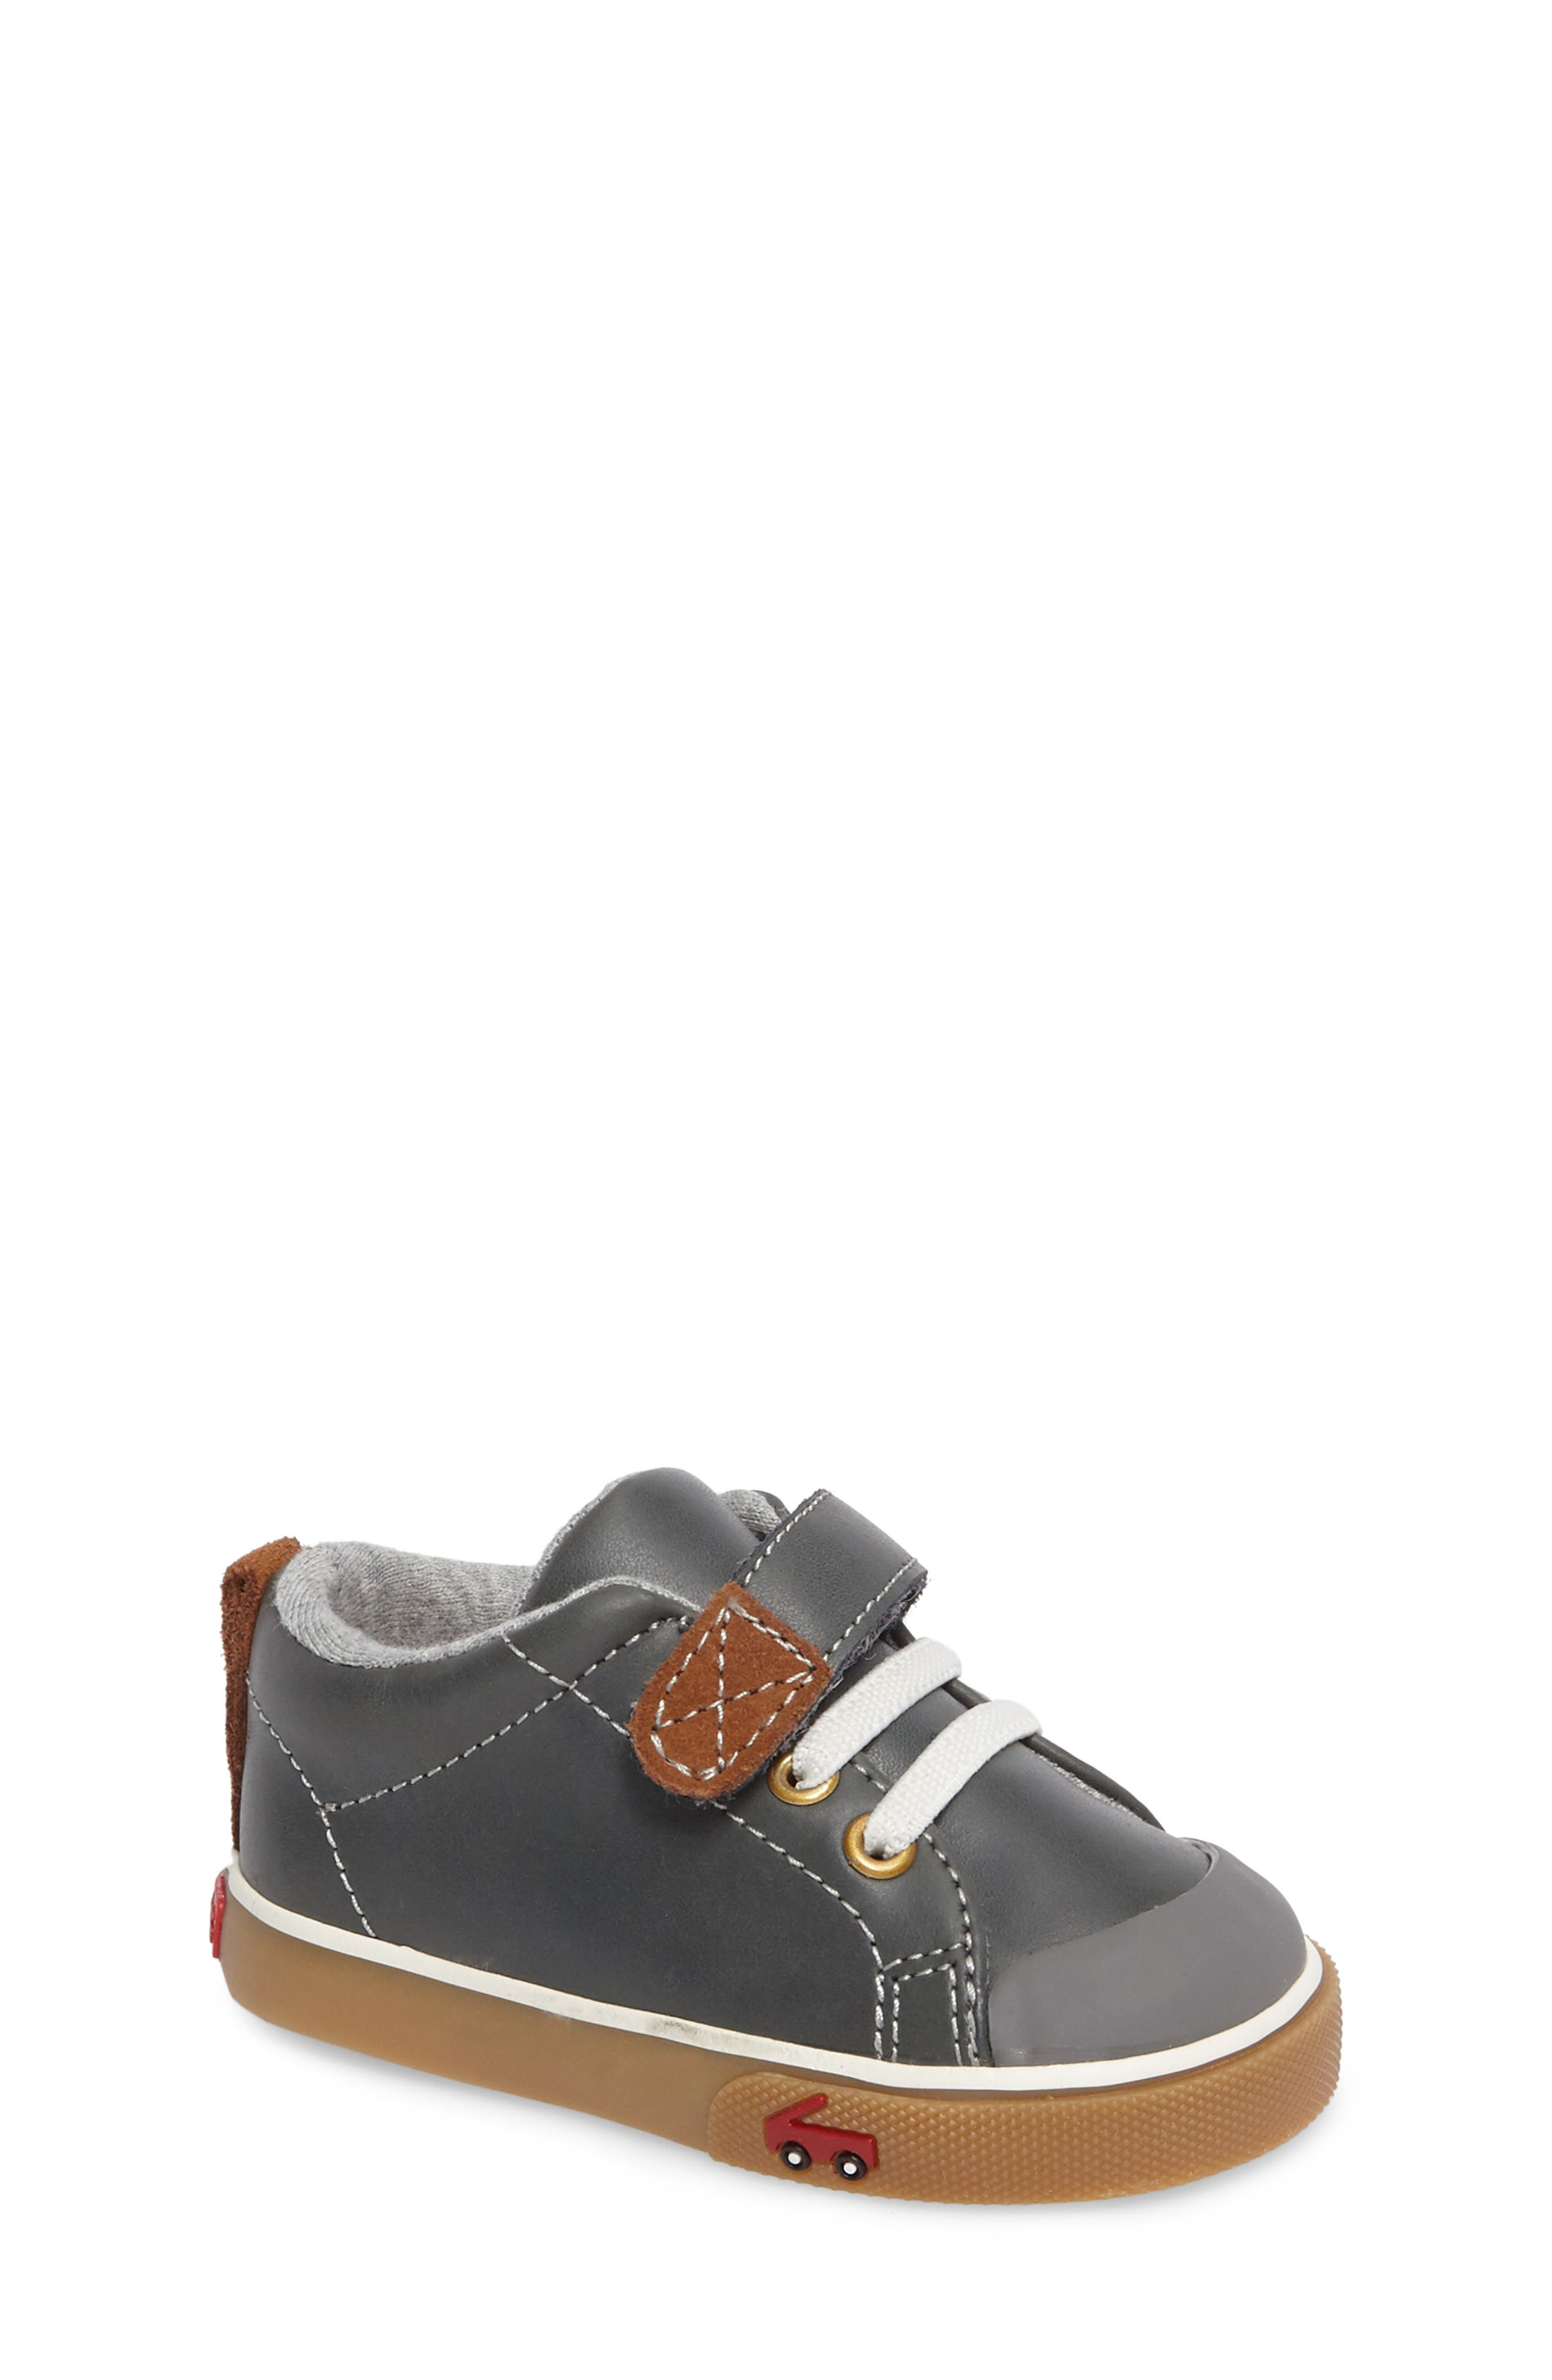 Stevie II Sneaker,                         Main,                         color, Grey Leather